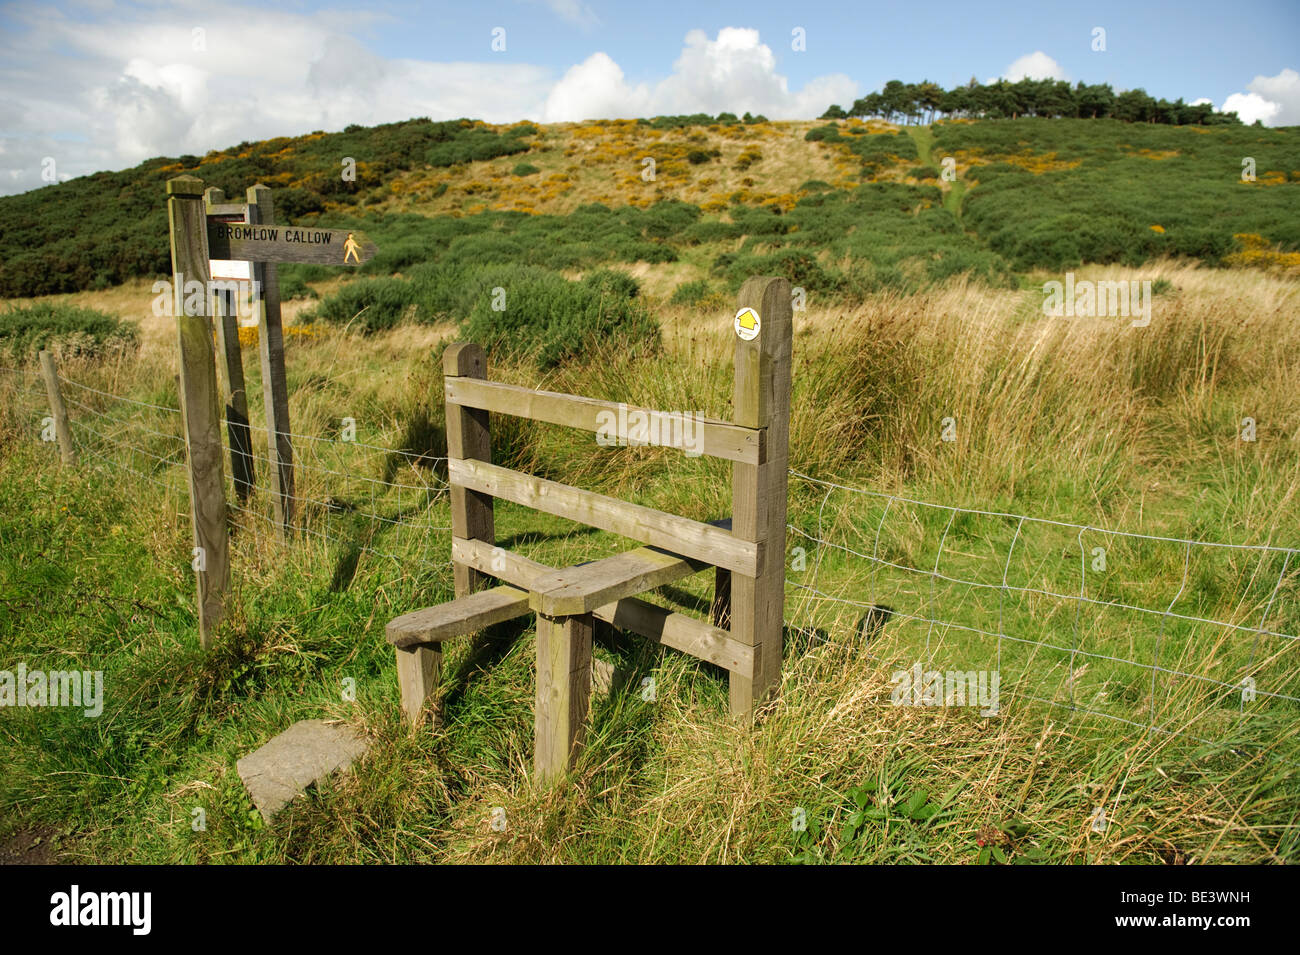 Bromlow Callow - wooden stile on a  public footpath, Shropshire England UK - Stock Image